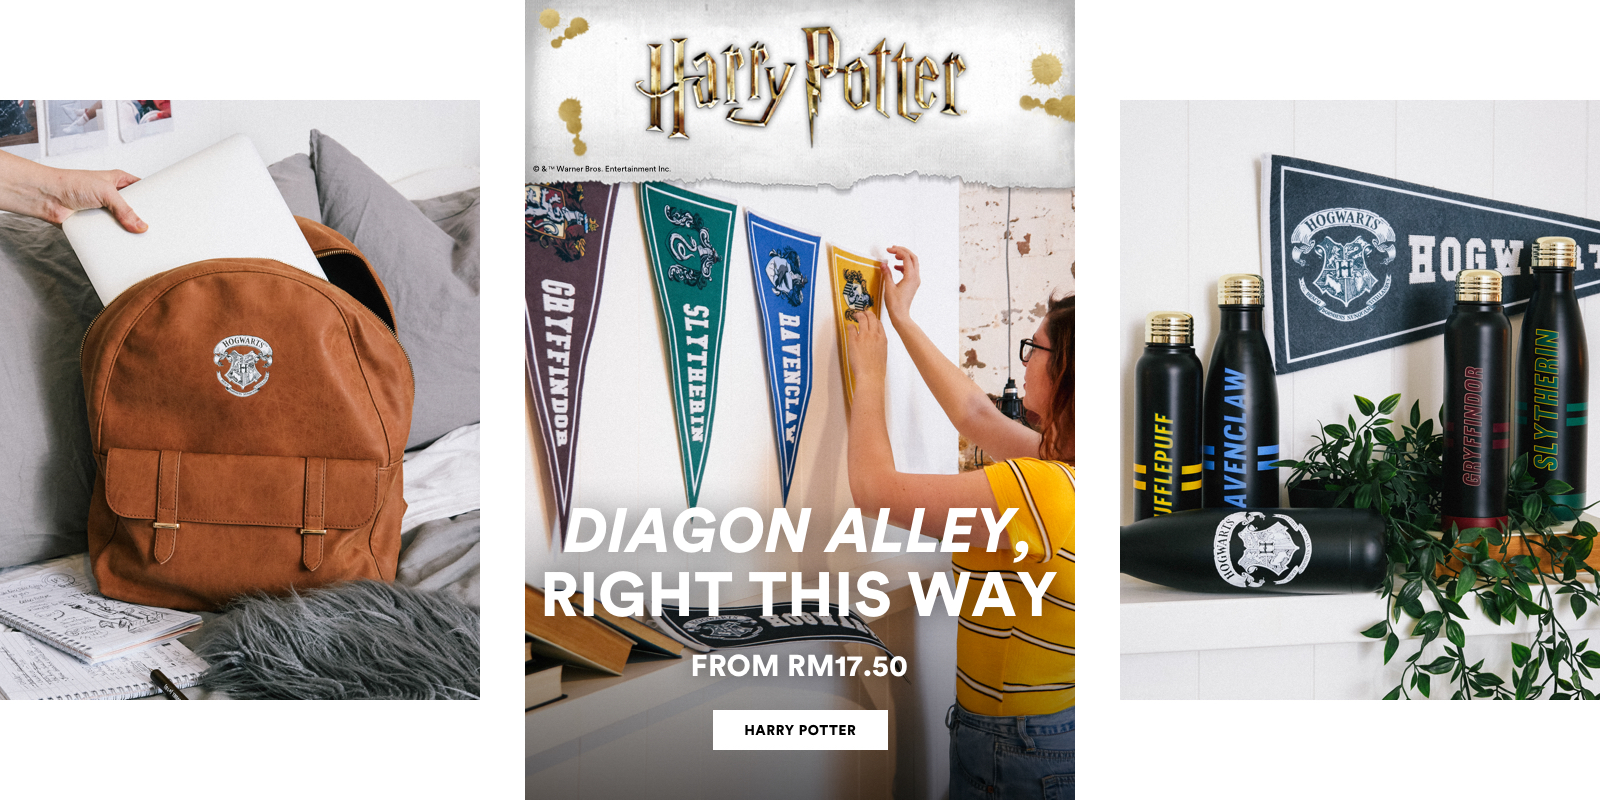 Harry Potter. Diagon Alley, right this way. From RM17.50. Click to shop now